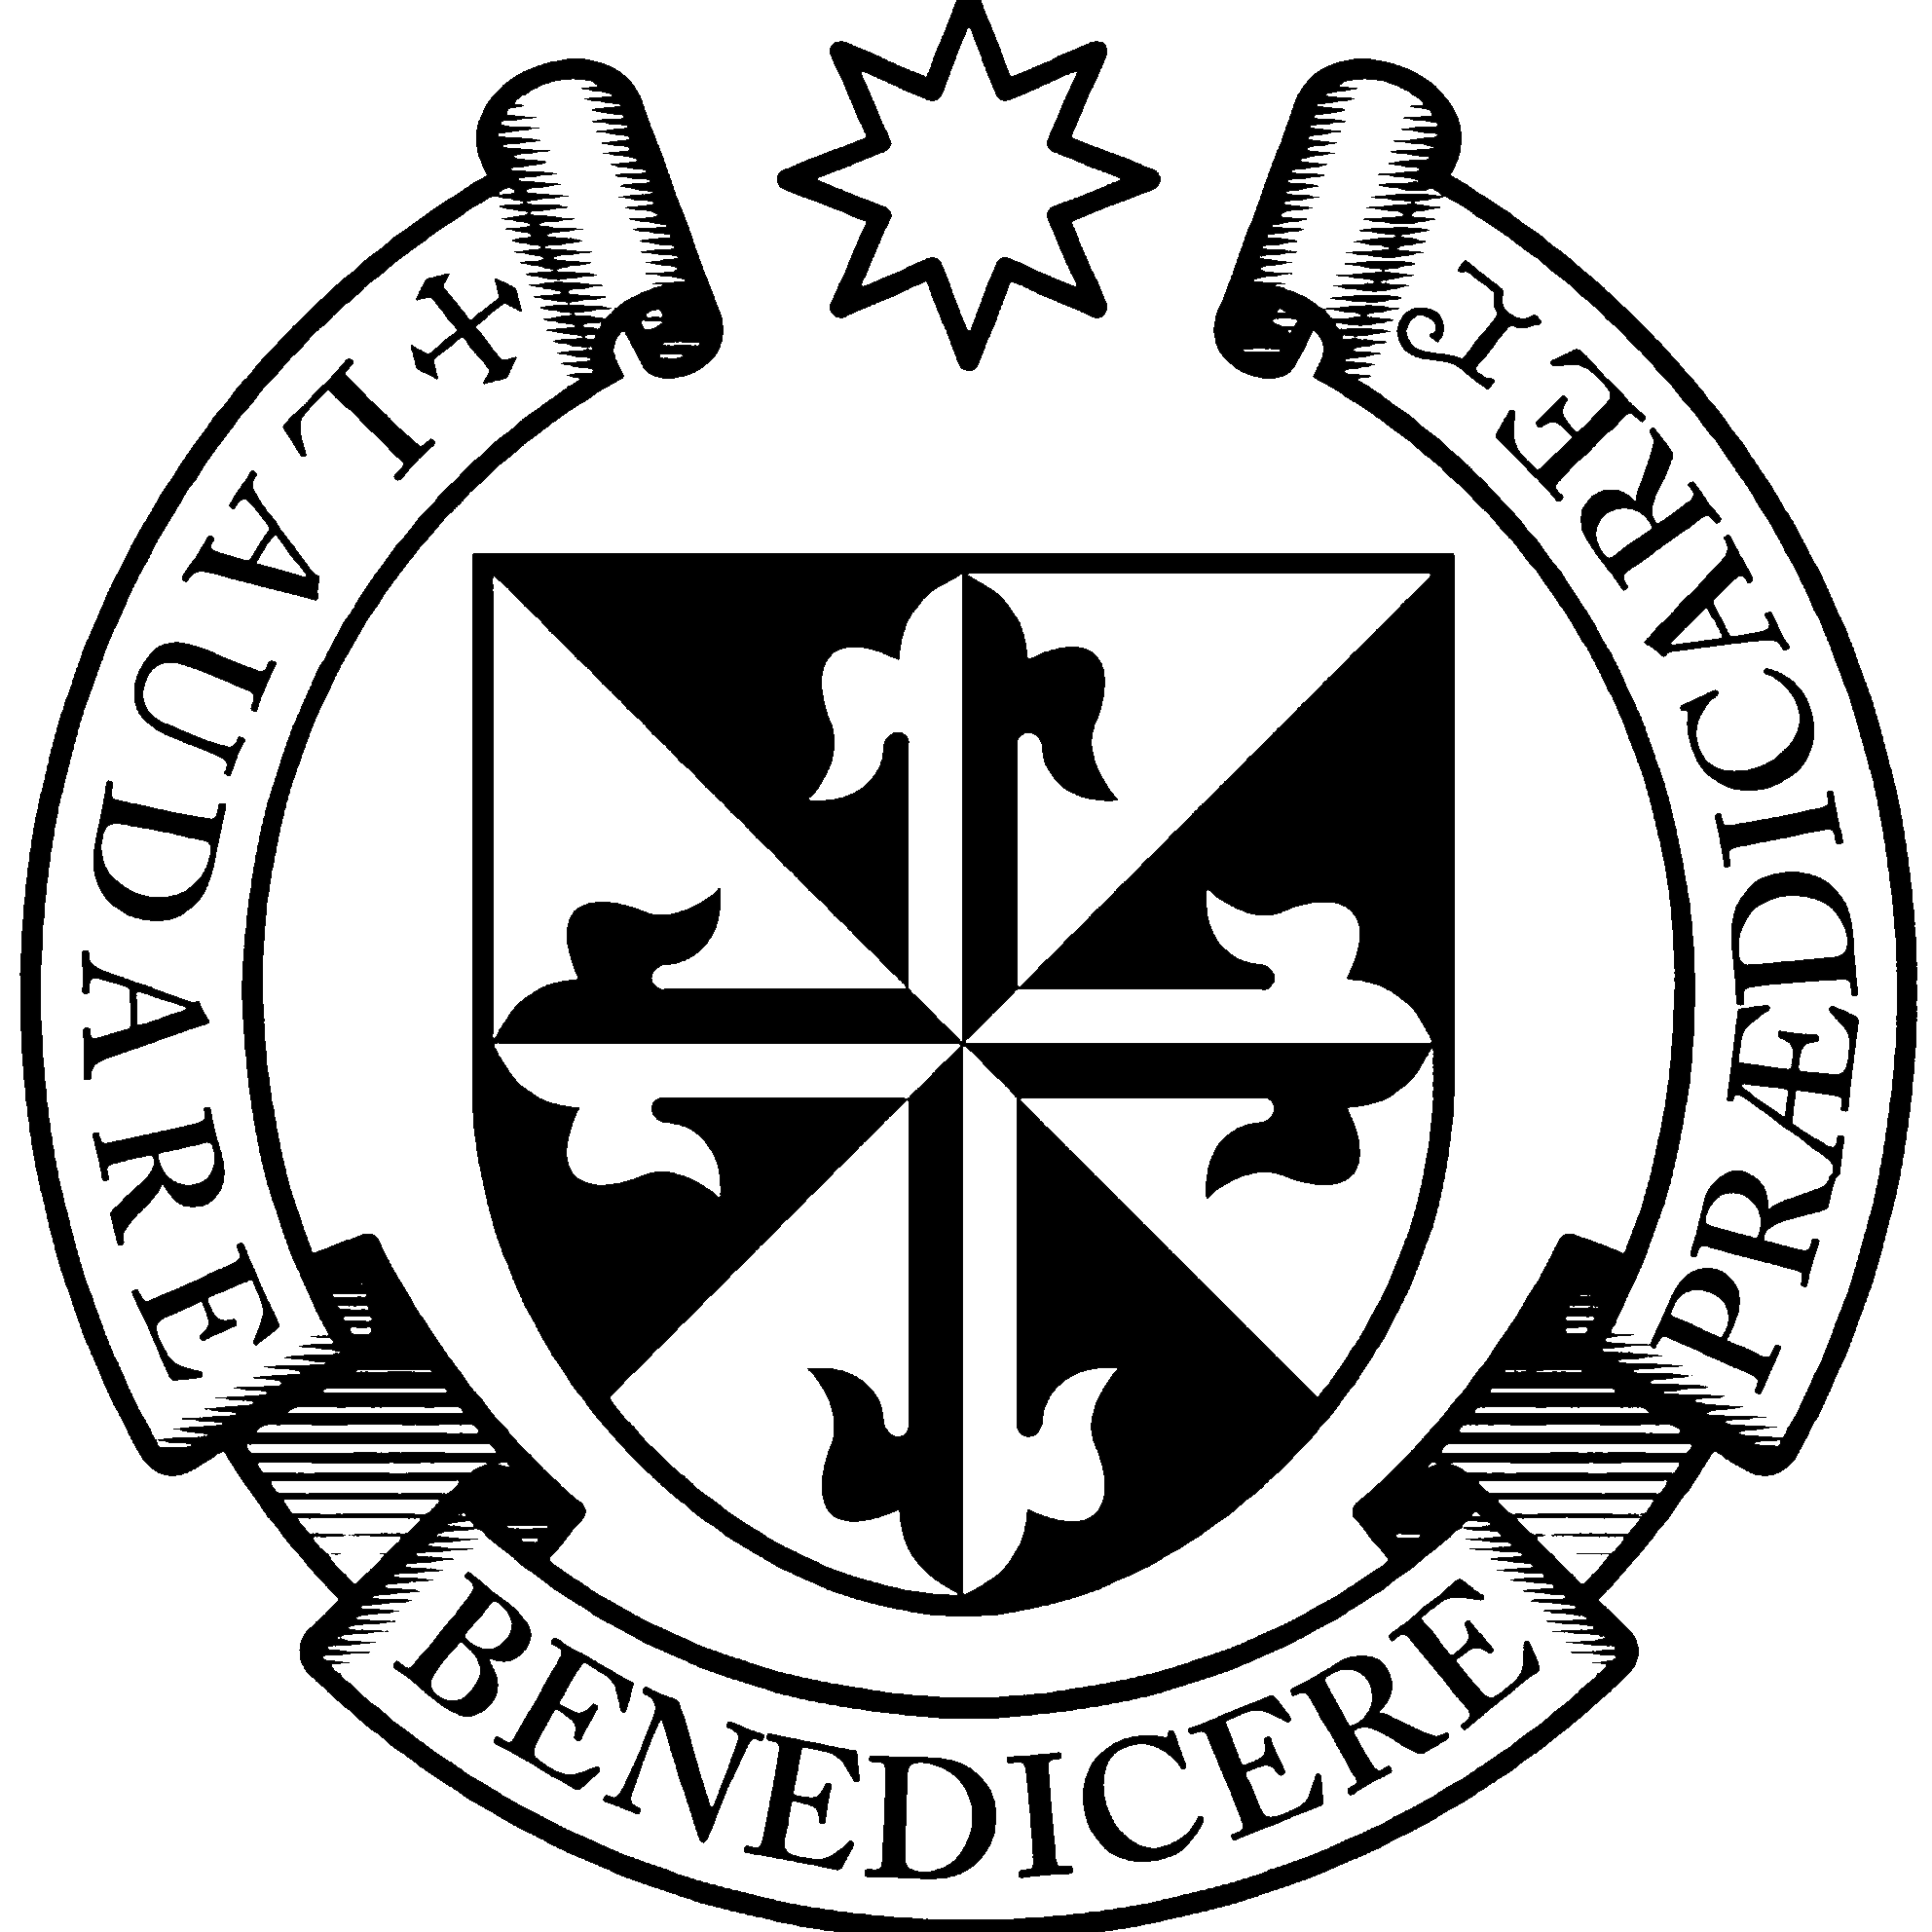 The Order of Preachers